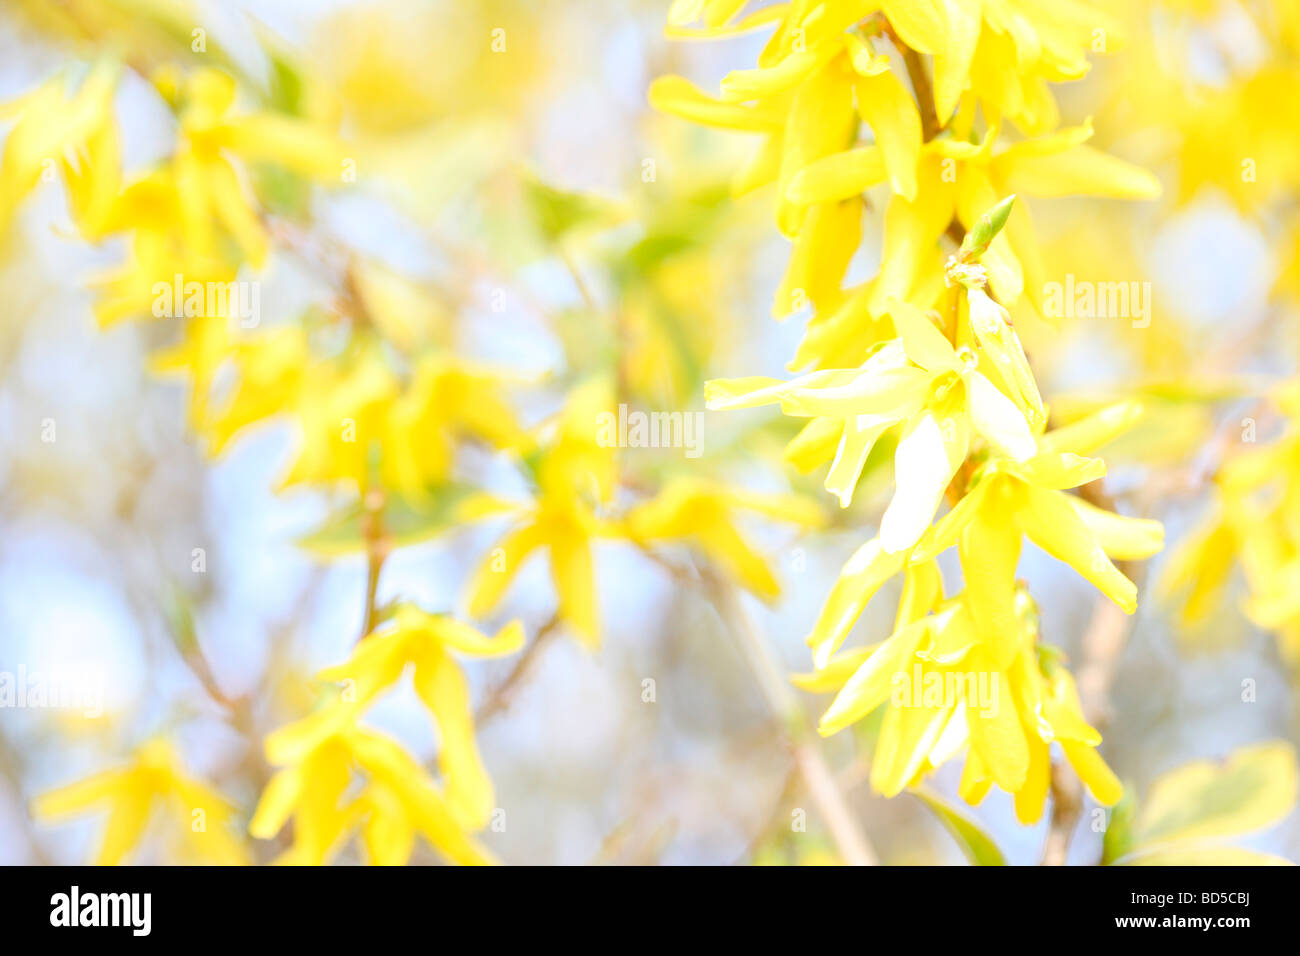 charming yellow forsythia stems in a contemporary style fine art photography Jane Ann Butler Photography JABP525 Stock Photo